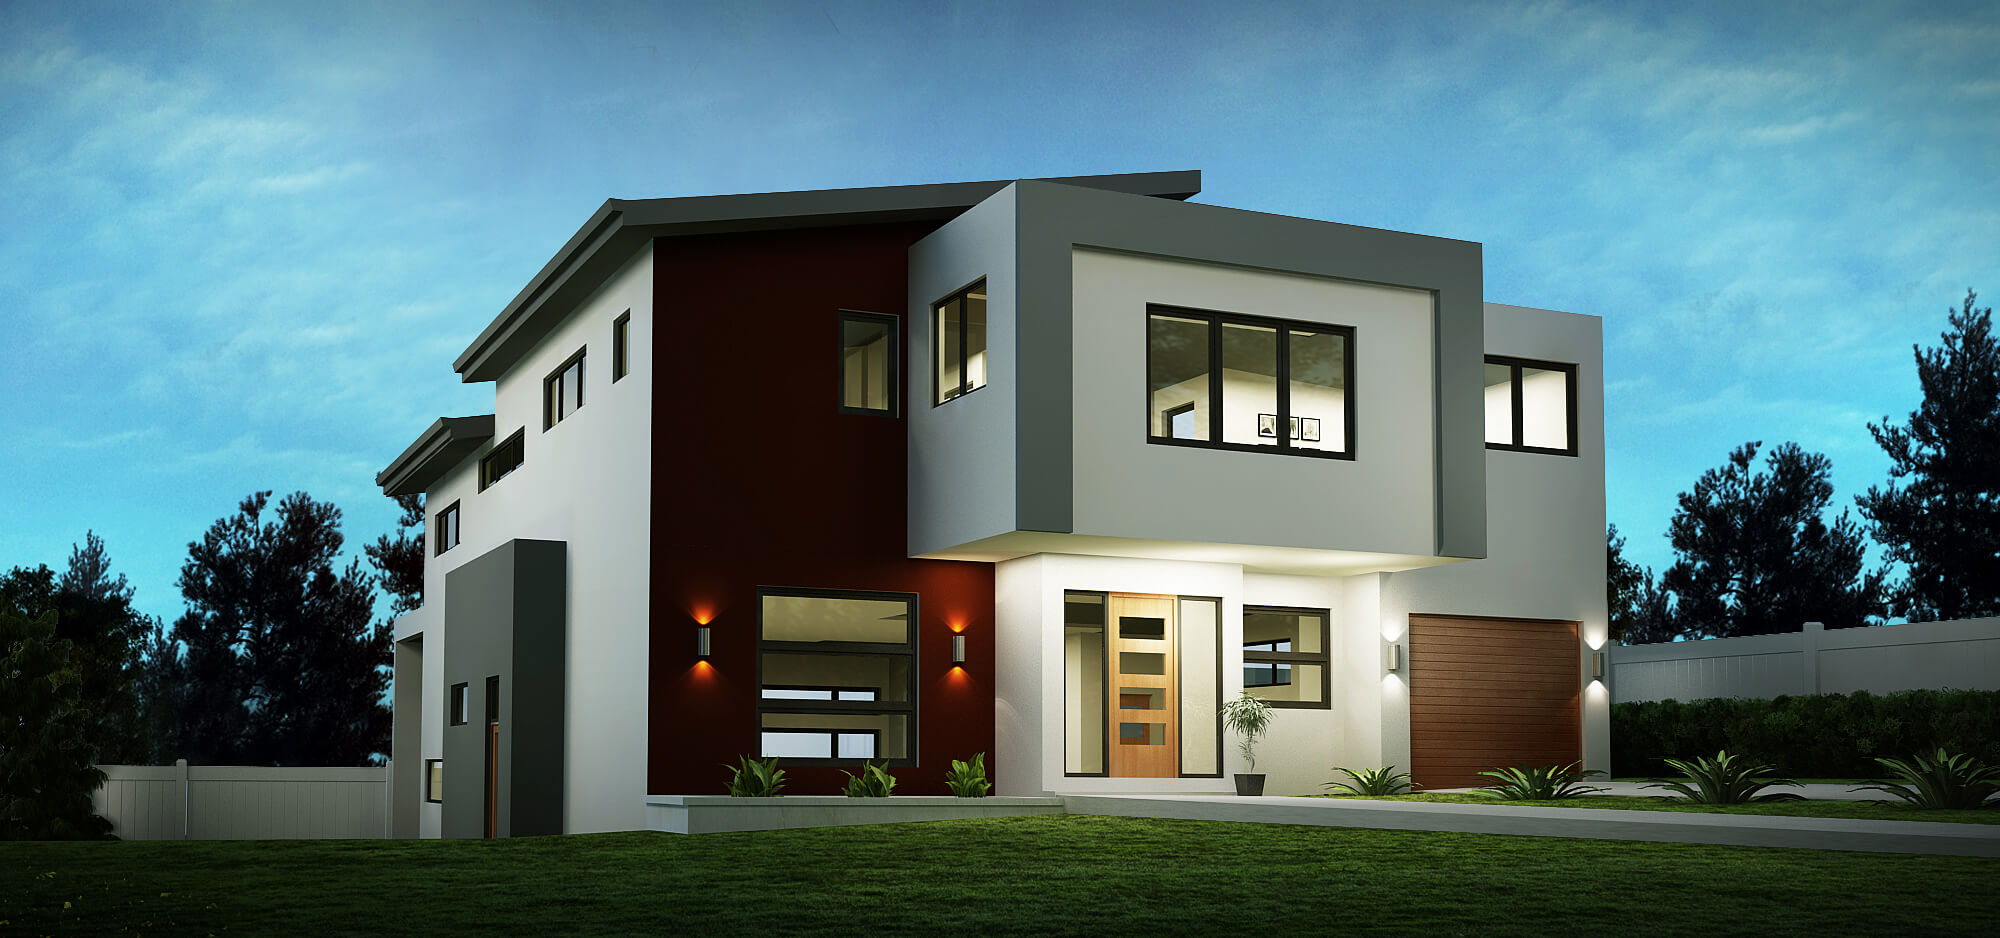 Sloping house block designs custom home designs for Custom home designs